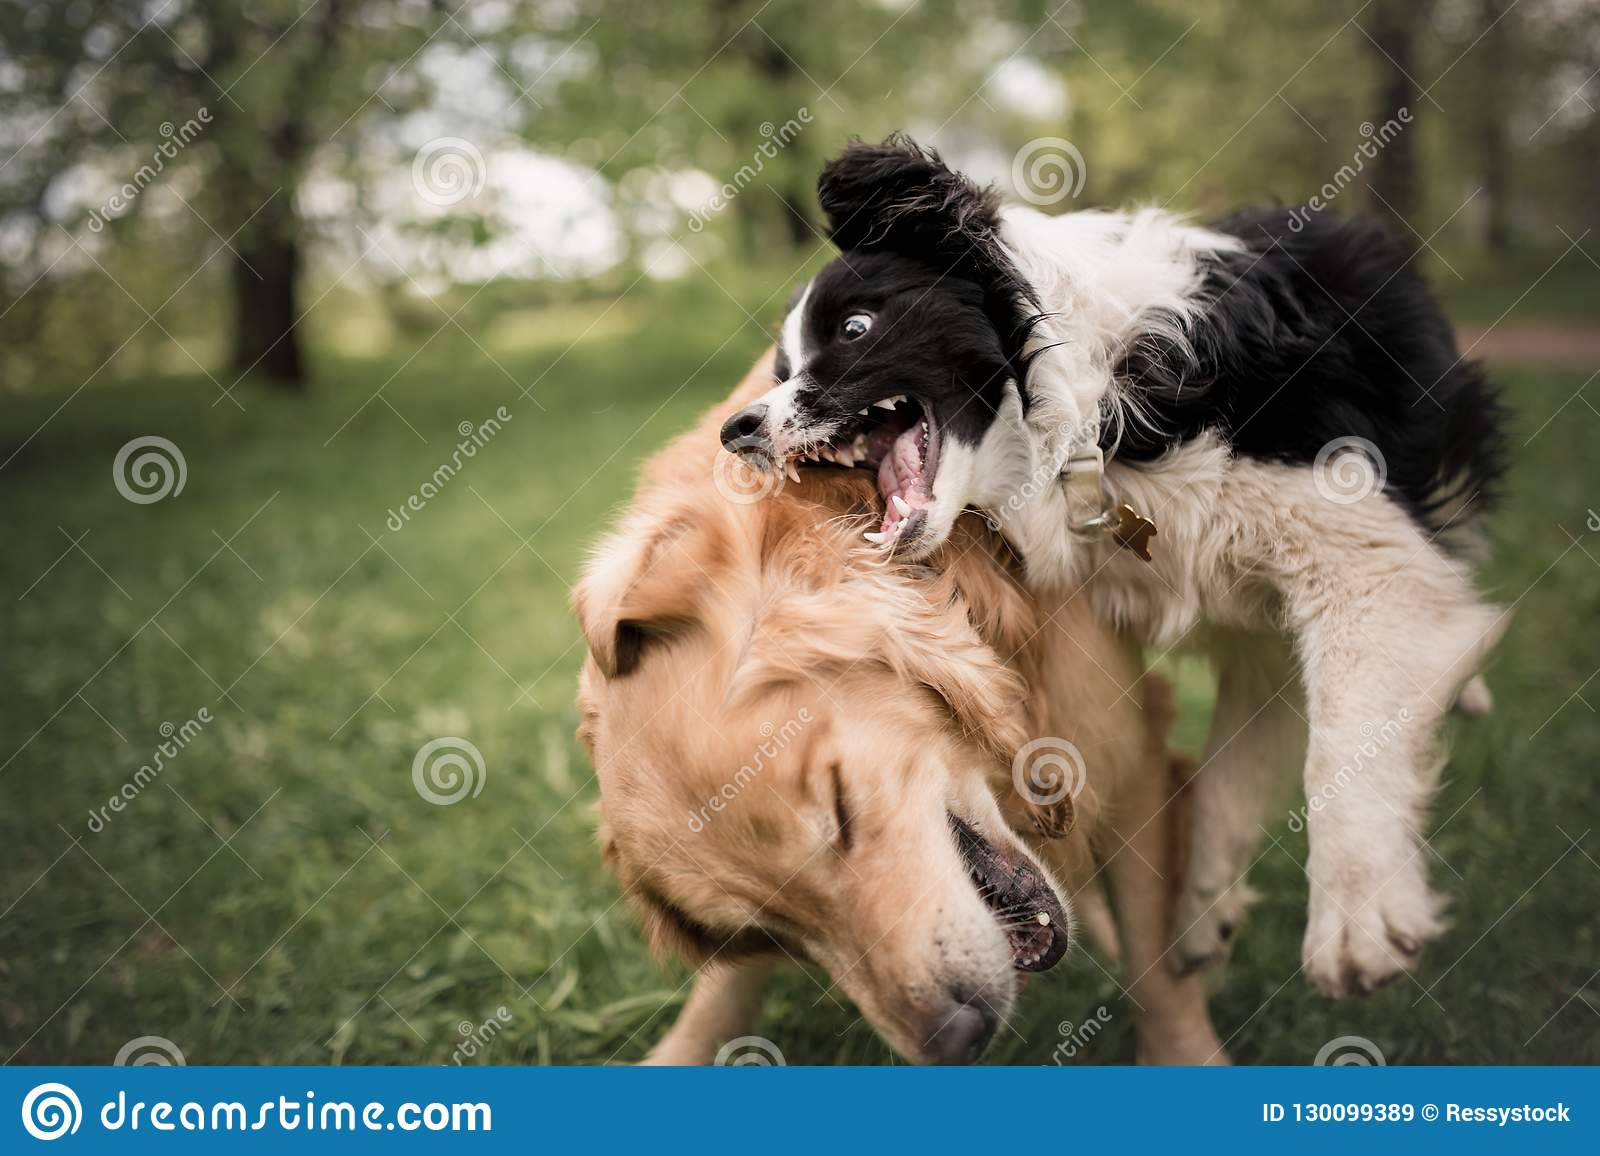 cute adorable black and white border collie and golden retriever